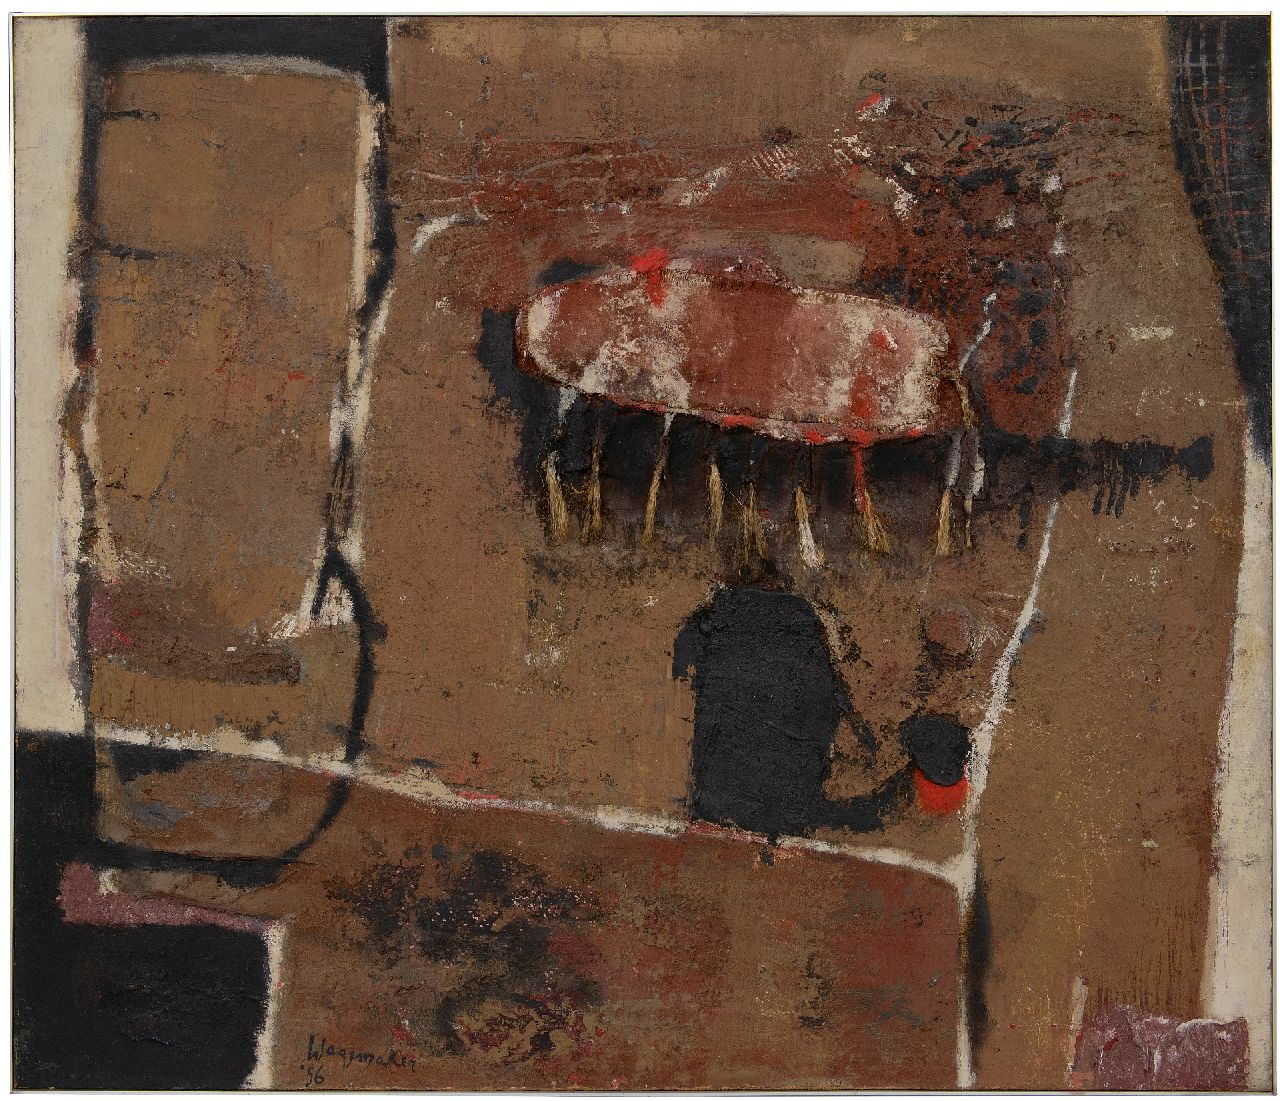 Wagemaker A.B.  | Adriaan Barend 'Jaap' Wagemaker | Paintings offered for sale | Forme Détachée, mixed media on canvas 94.3 x 110.4 cm, signed l.l. and dated '56